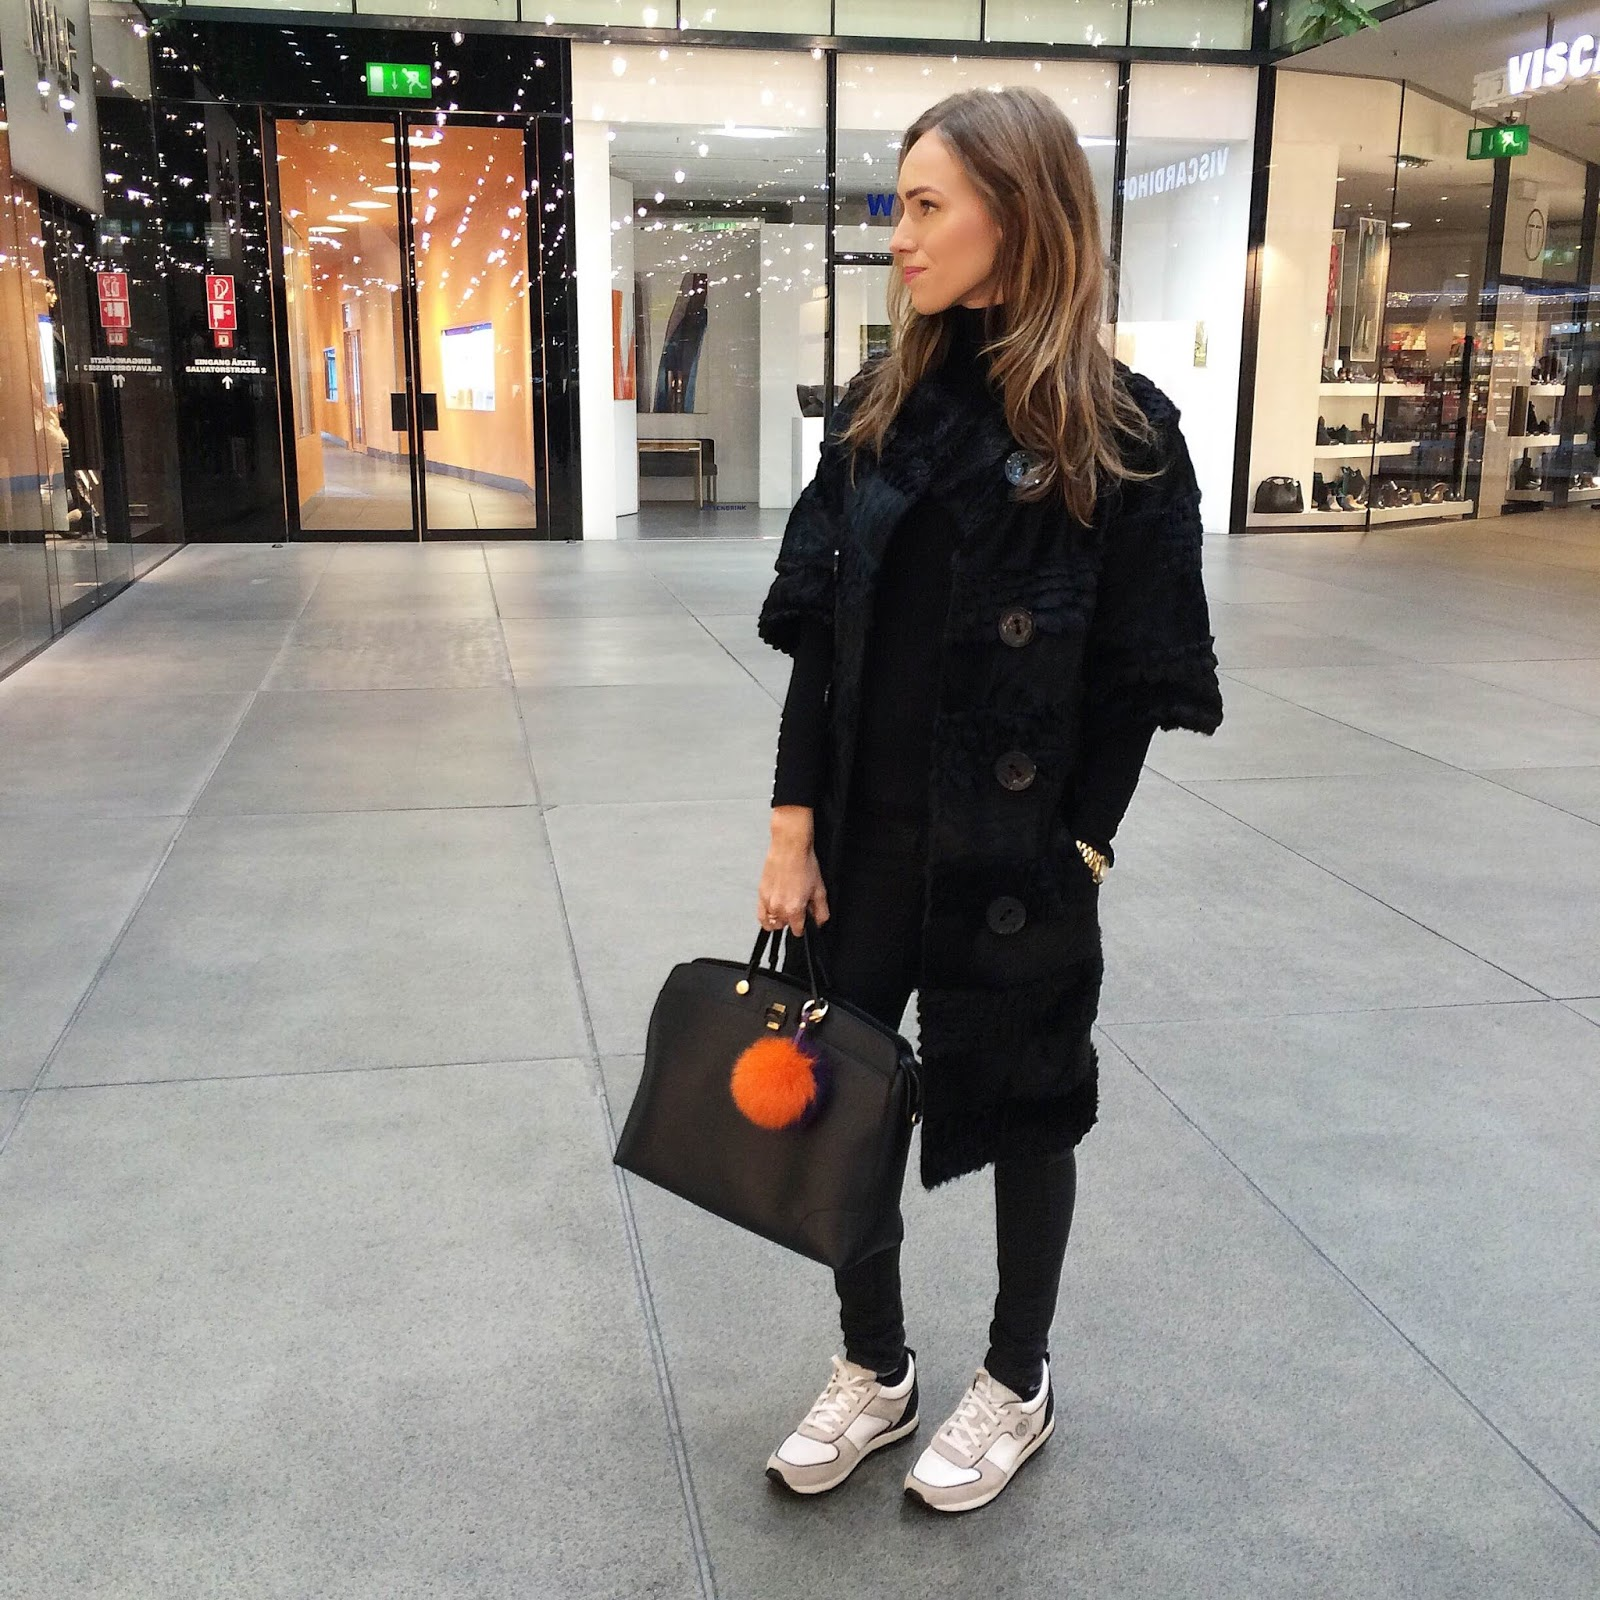 kristjaana mere black fur coat black jeans white sneakers winter style outfit